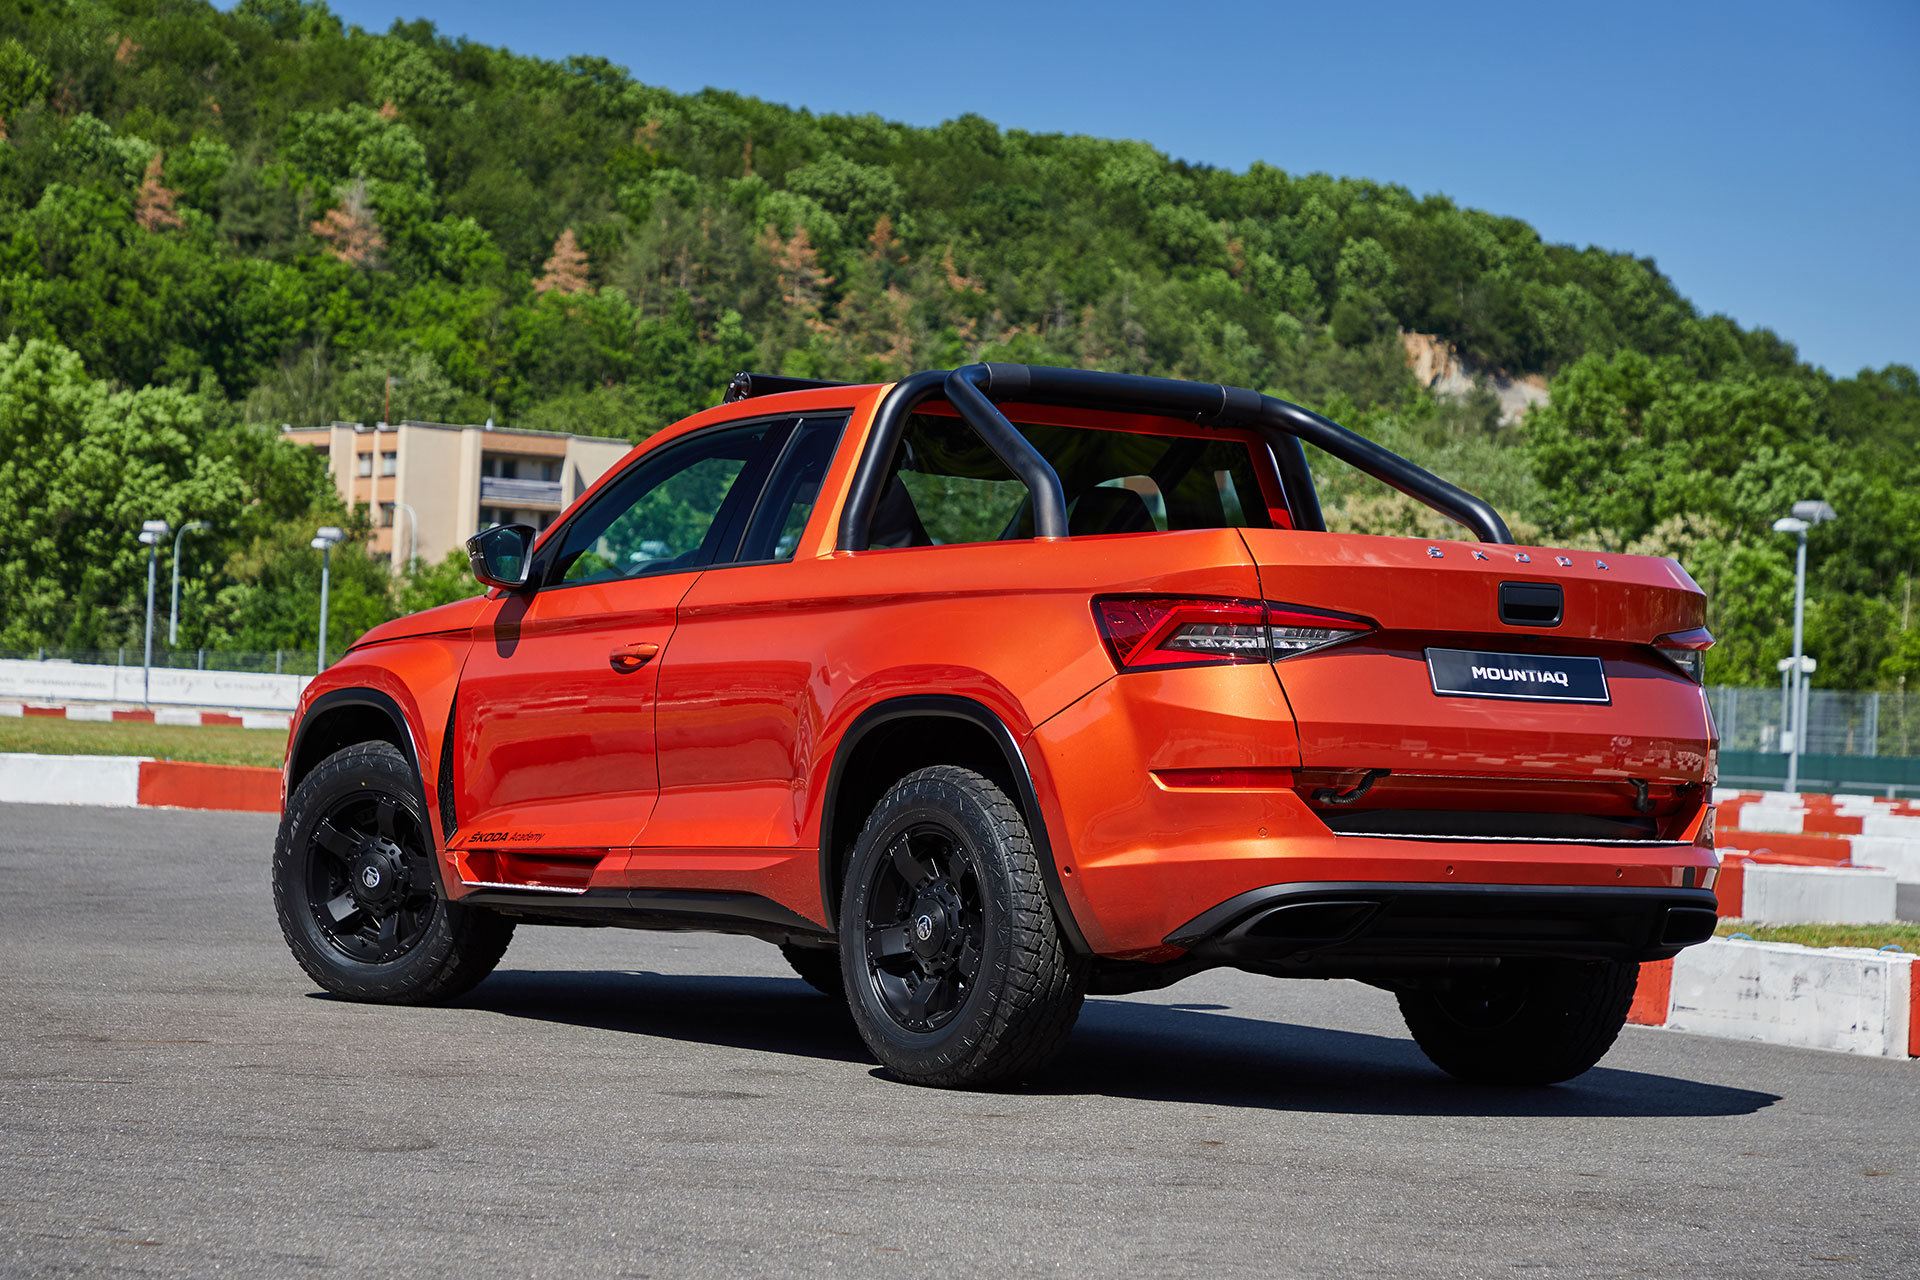 Skoda Mountiaq 2019 Movimiento 02